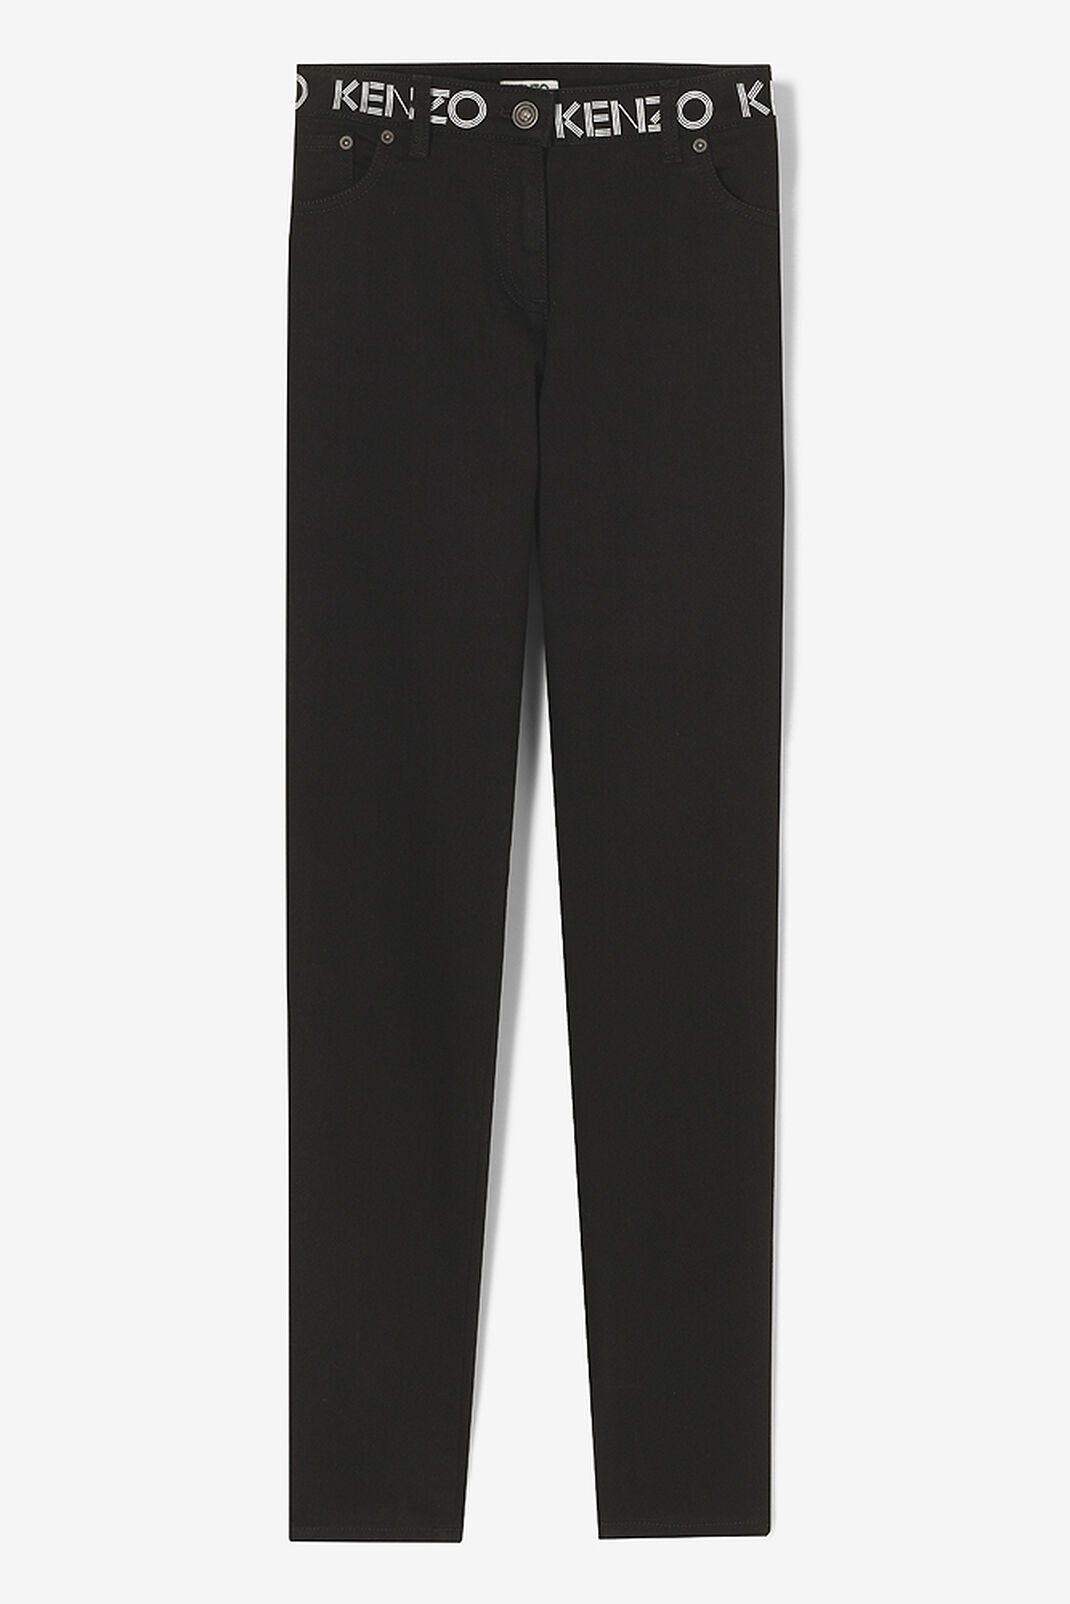 BLACK KENZO Super Stretch Jeans for women